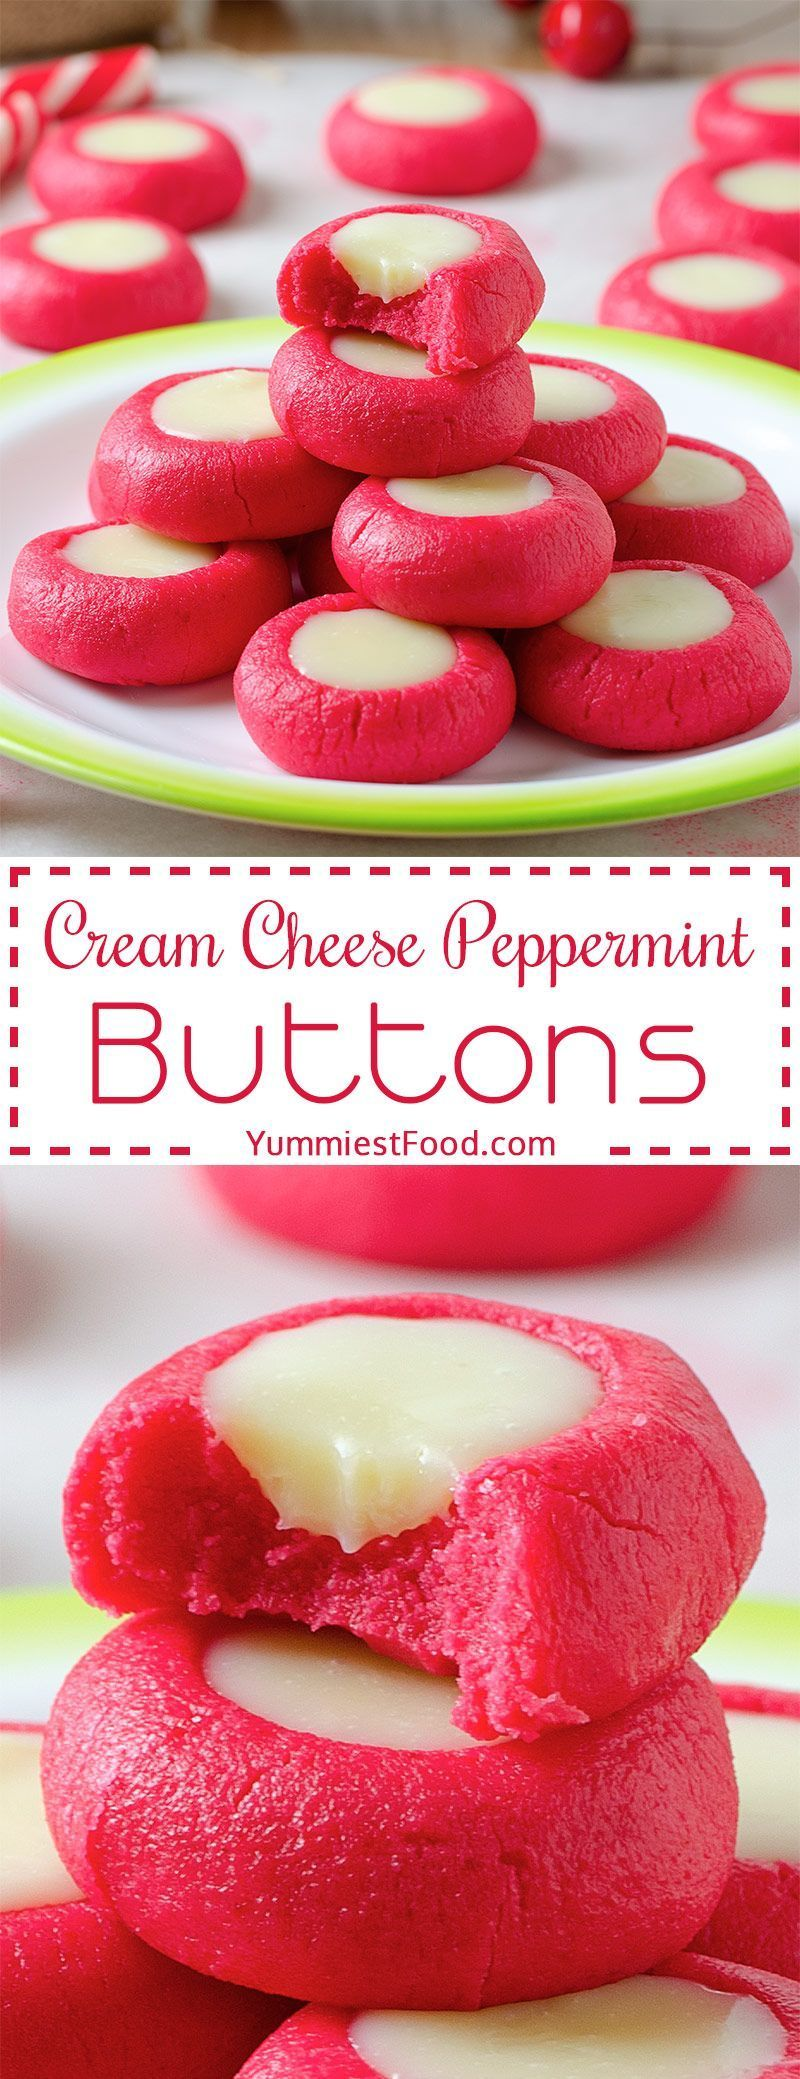 Peppermint Christmas Buttons Recipe Cream Cheese Peppermint Christmas Buttons Recipe - Super Easy to make Christmas Recipe, fantastically festive and always a hit with kids and adults alike!Cream Cheese Peppermint Christmas Buttons Recipe - Super Easy to make Christmas Recipe...